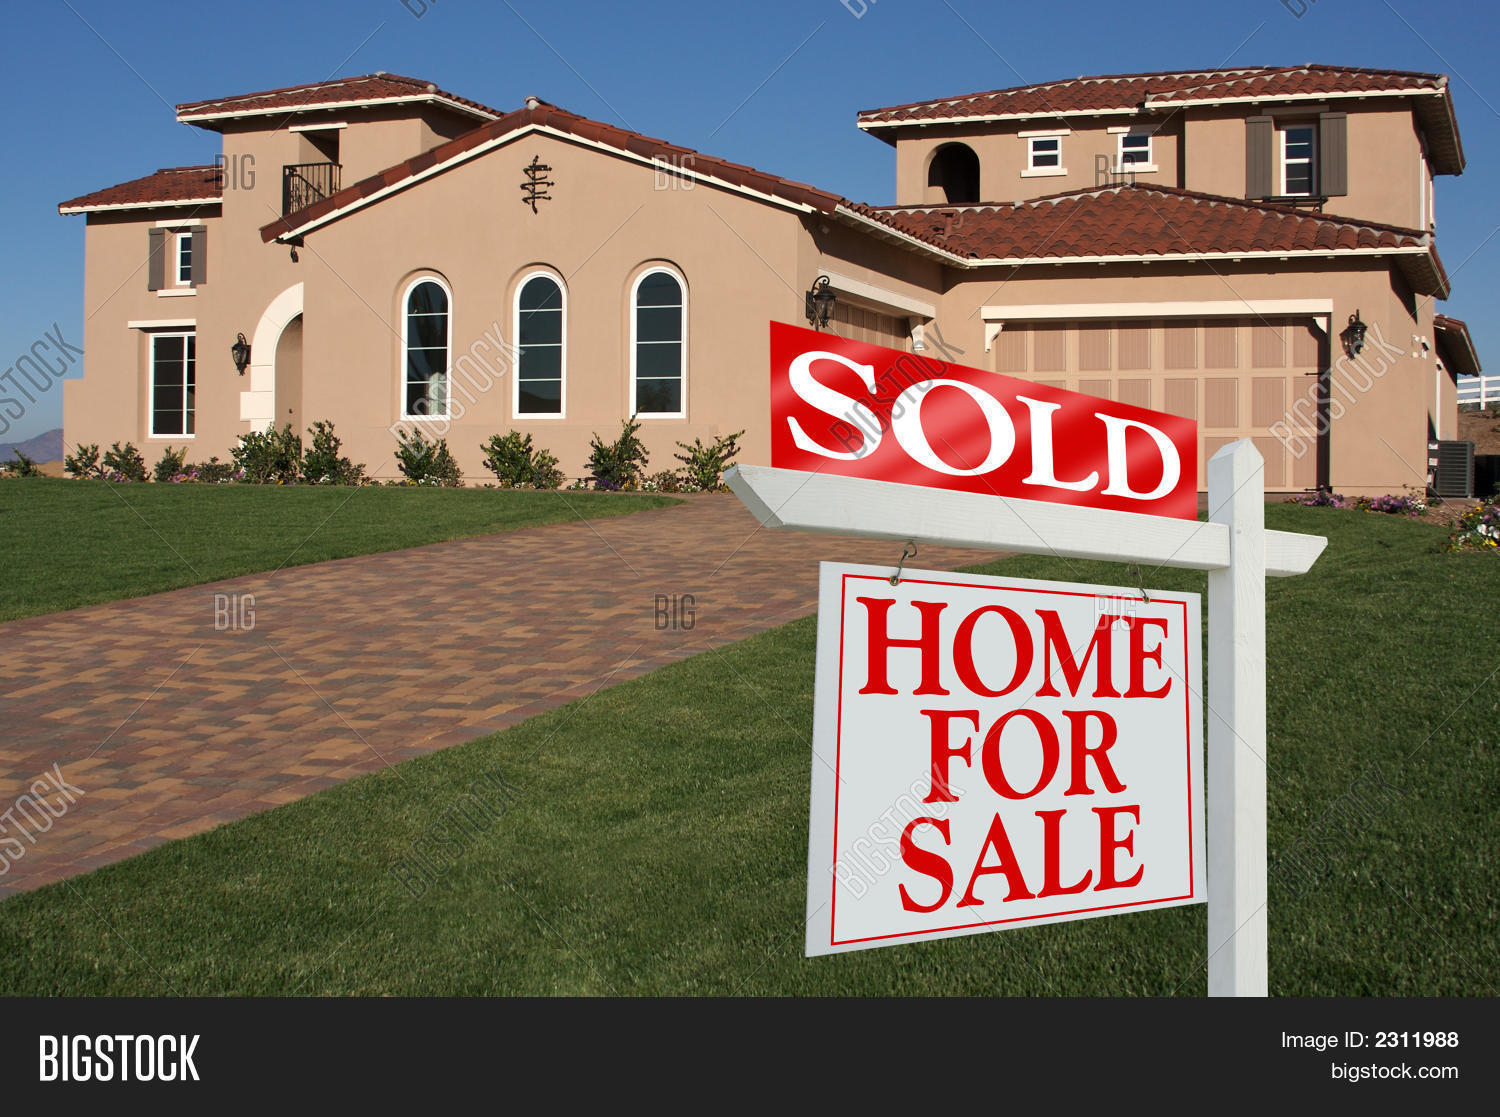 Sold Home Sale Sign Front New House Image & Photo | Bigstock